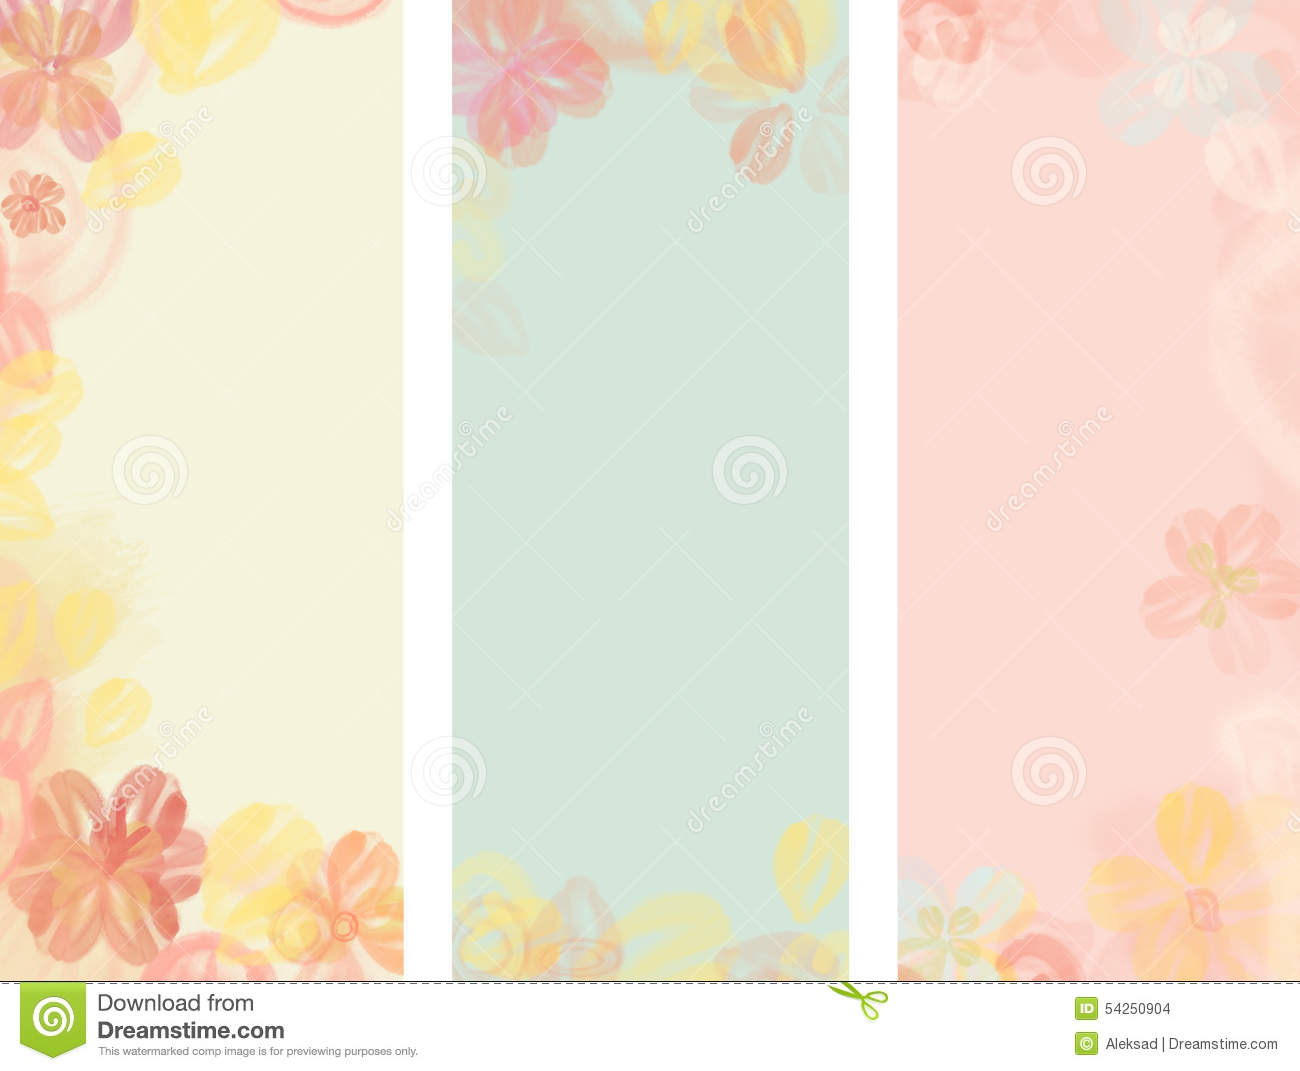 flower watercolor background stock illustration